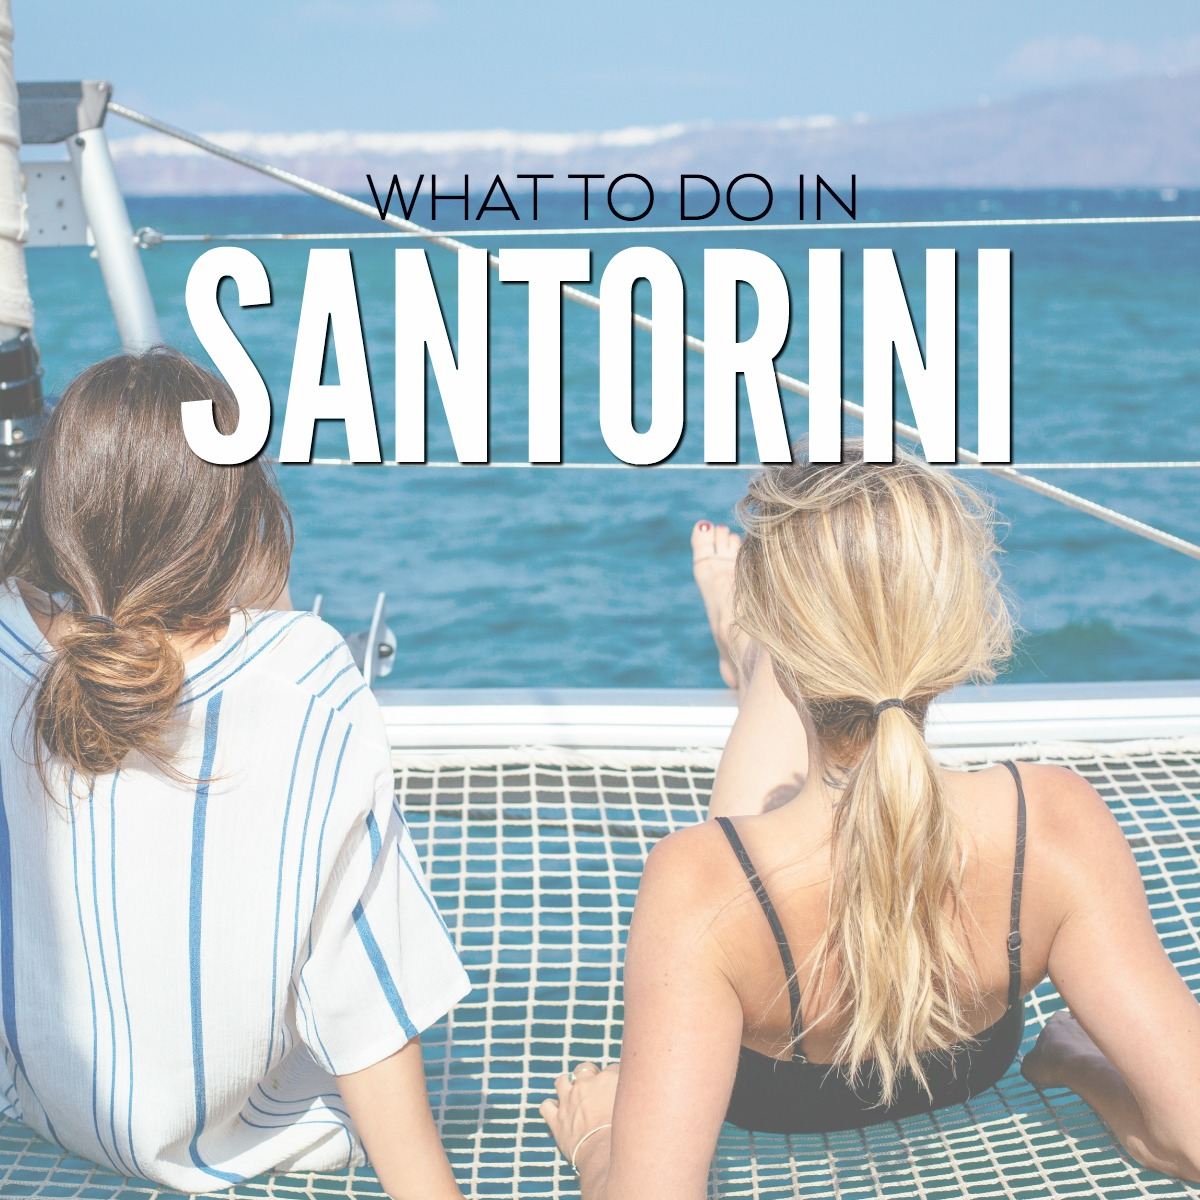 WHAT TO DO IN SANTORINI GREECE